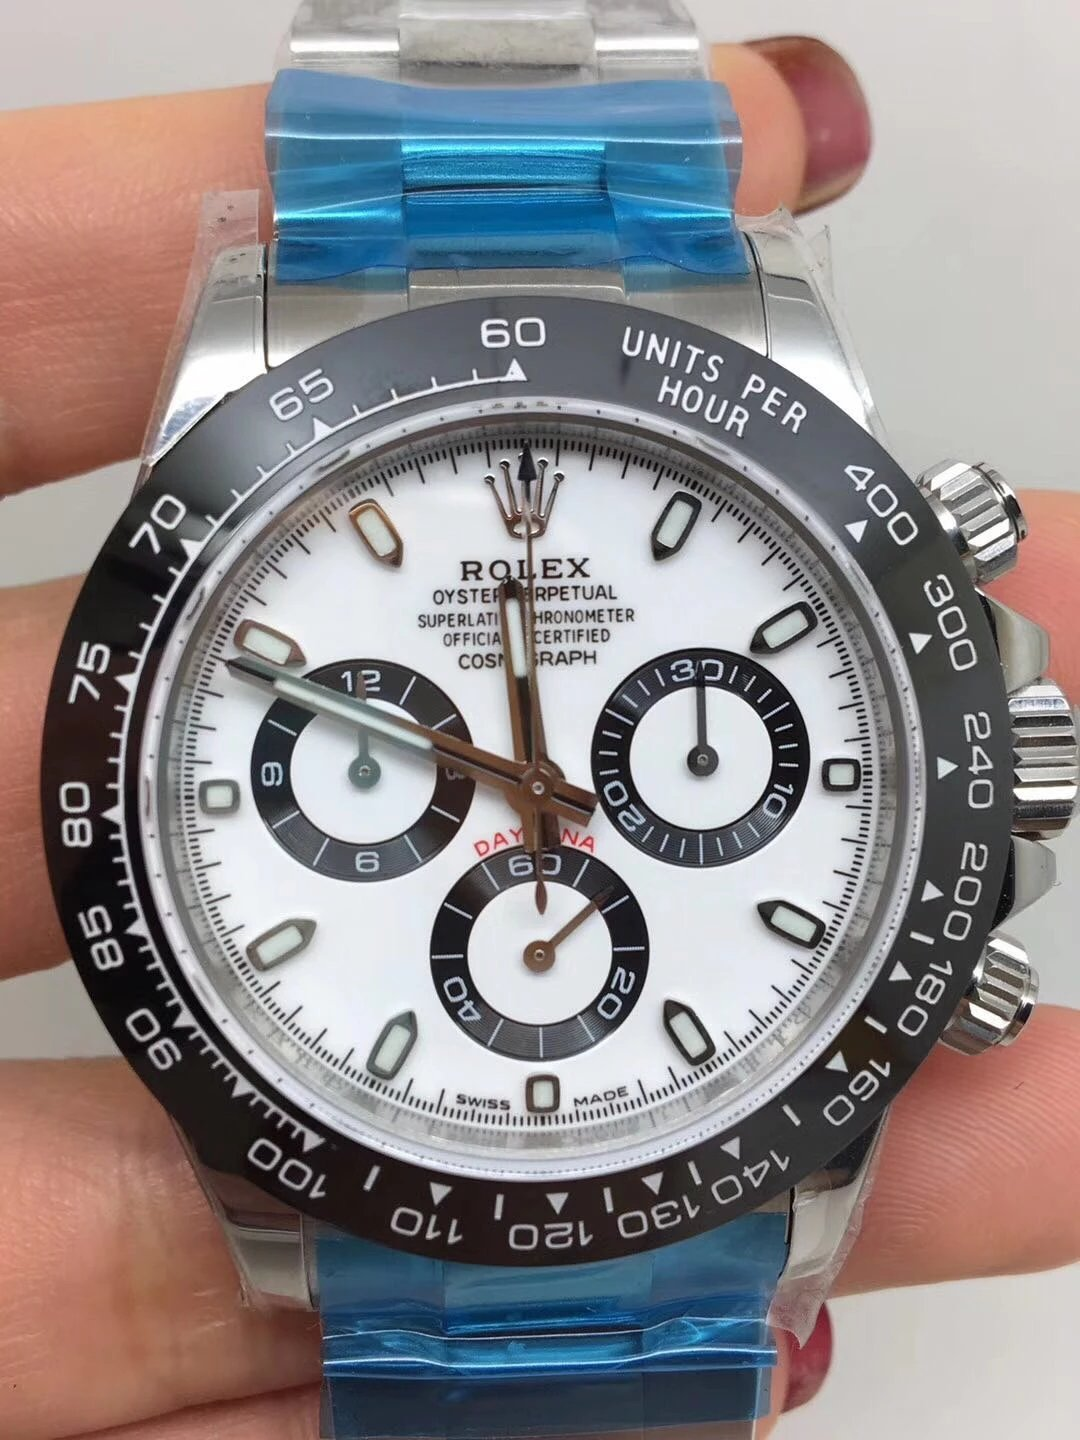 Noob Replica Rolex Daytona 116500 Ceramic White_1